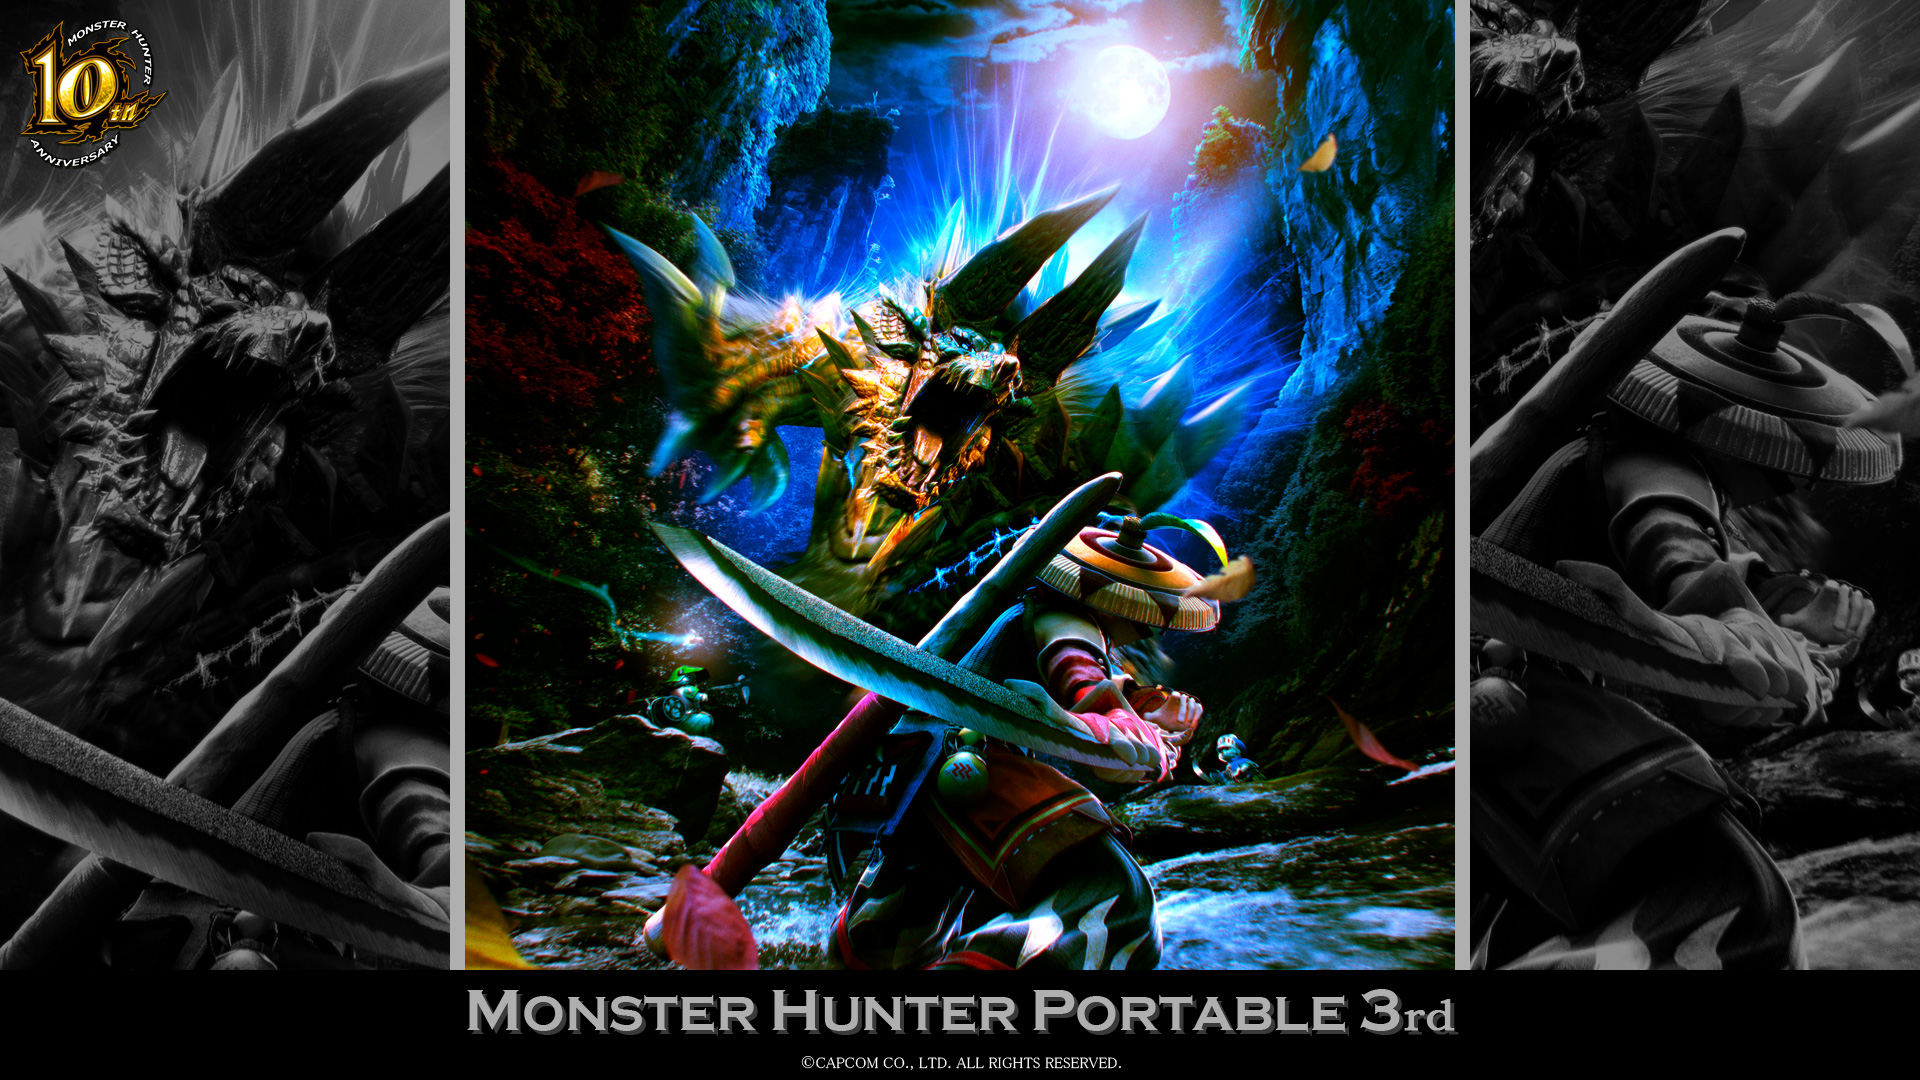 MH 10th Anniversary Monster Hunter Portable 3rd Wallpaper 001